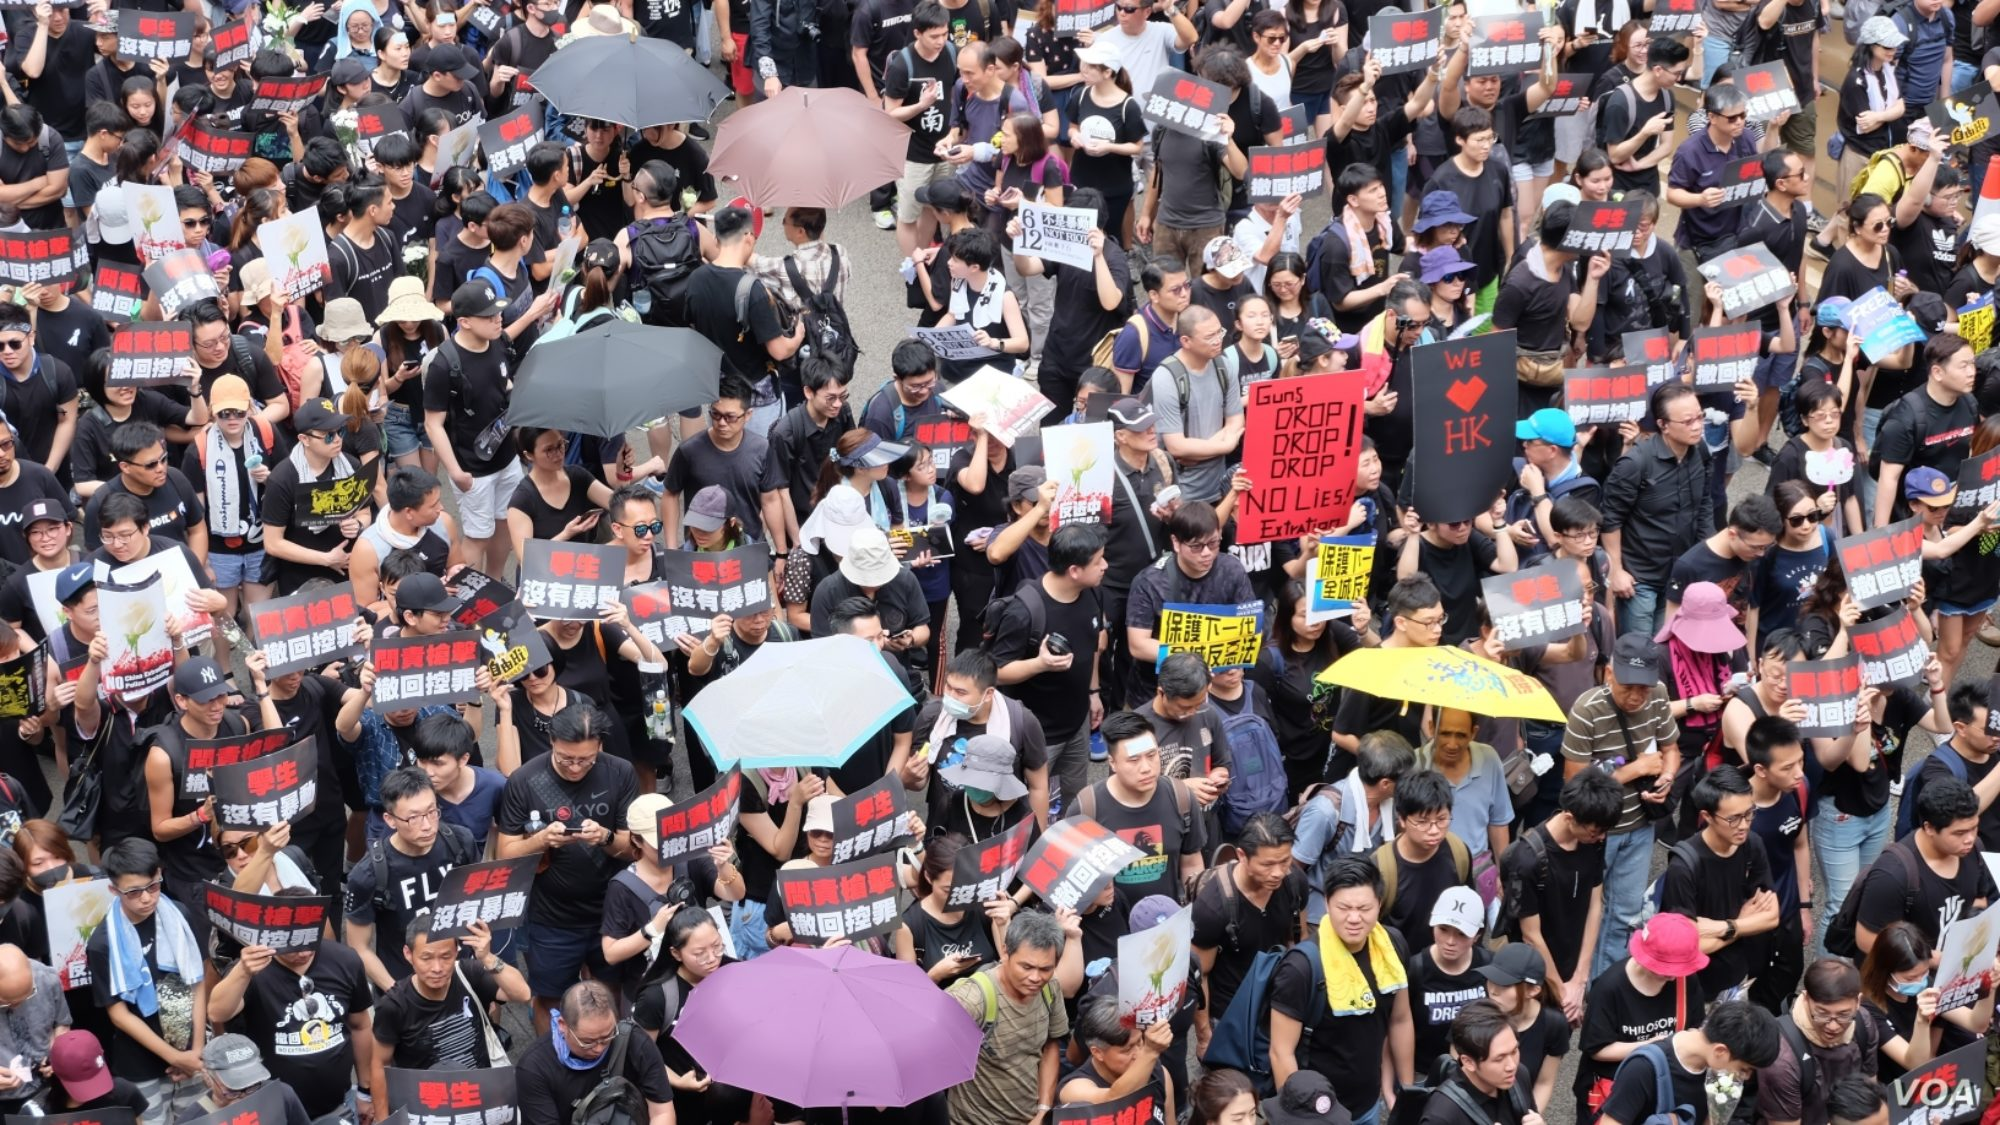 A large crowd of people hold signs calling for the resignation of Hong Kong's leaders.